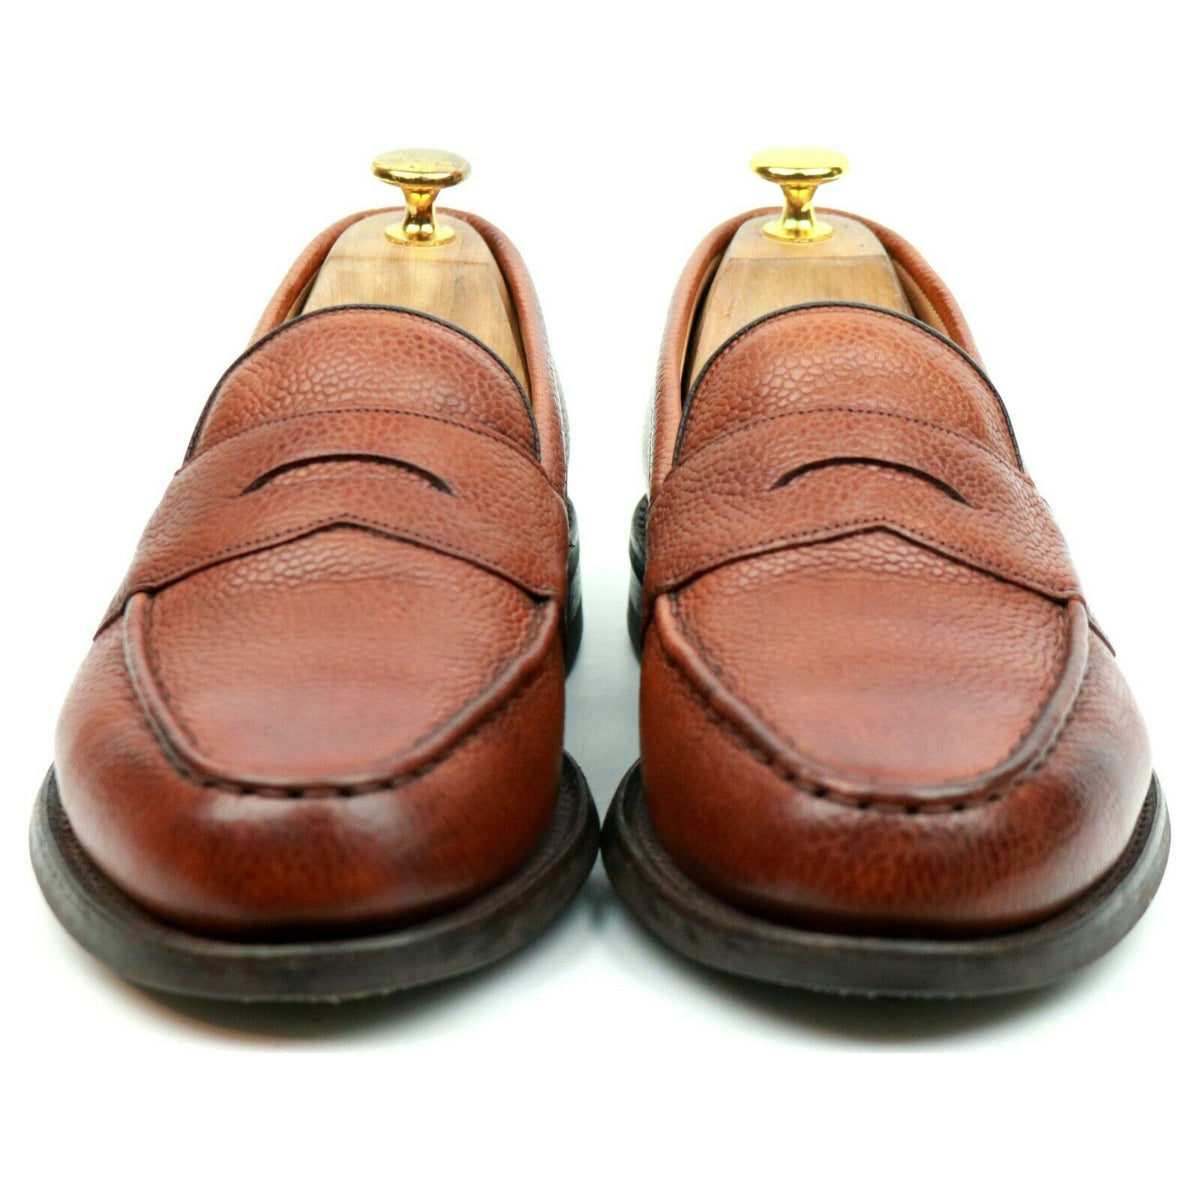 Cheaney 'Howard' Tan Brown Leather Loafers UK 7.5 F